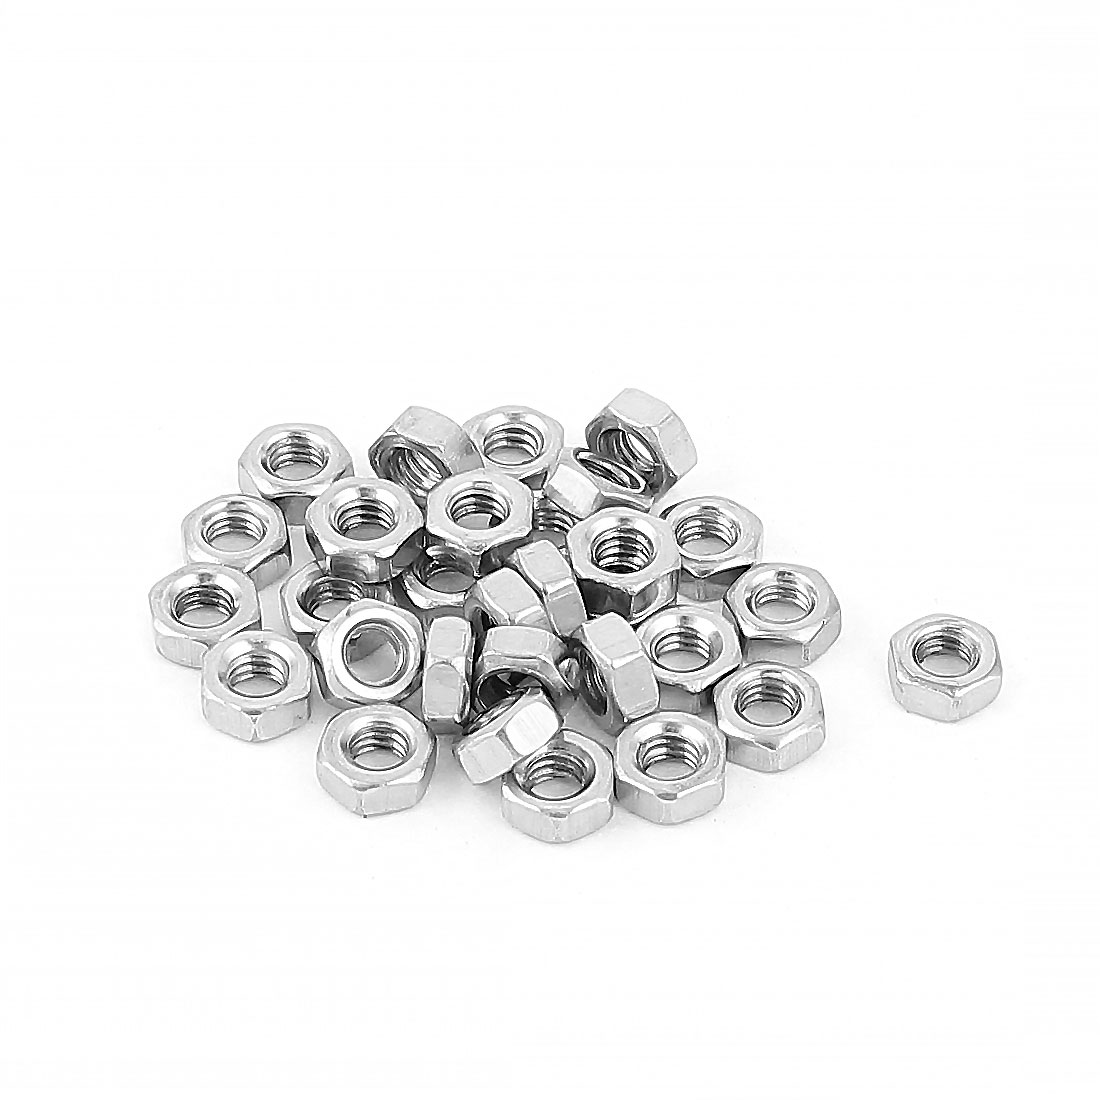 30pcs 304 Stainless Steel M4 4mm Hex Screw Nut Hexagon Nuts Fasteners